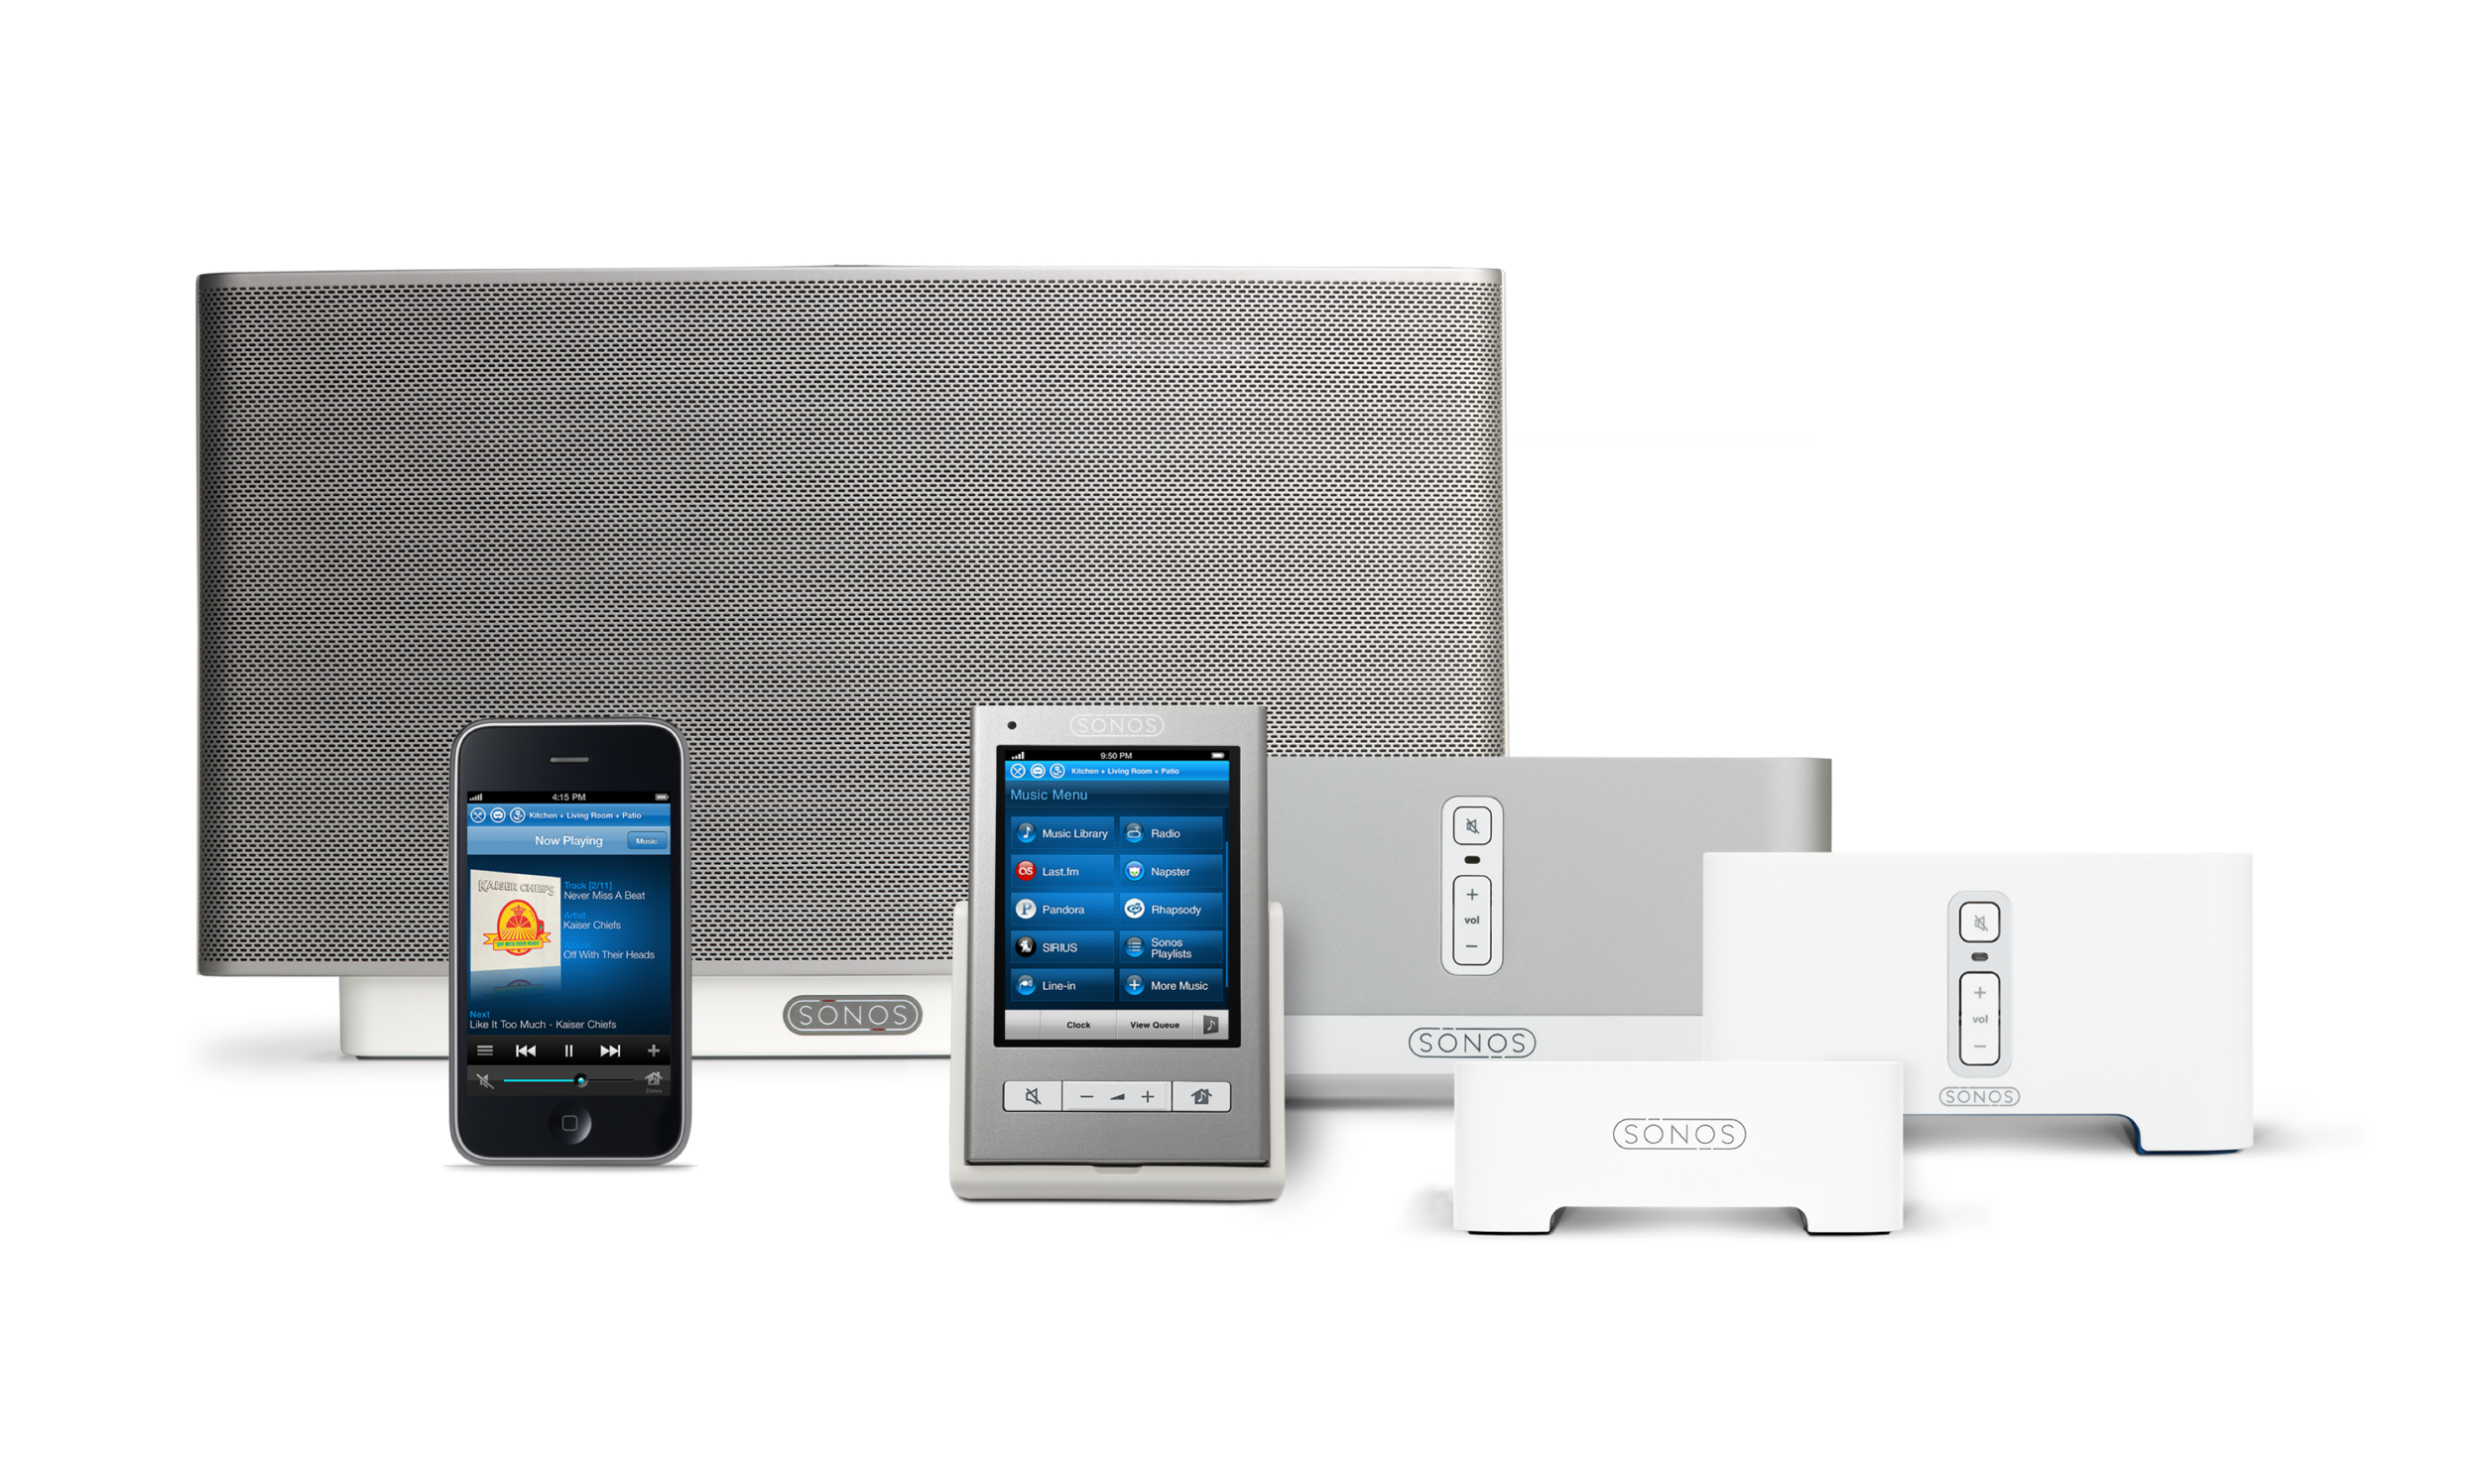 The first generation Sonos family of products designed by Y Studios